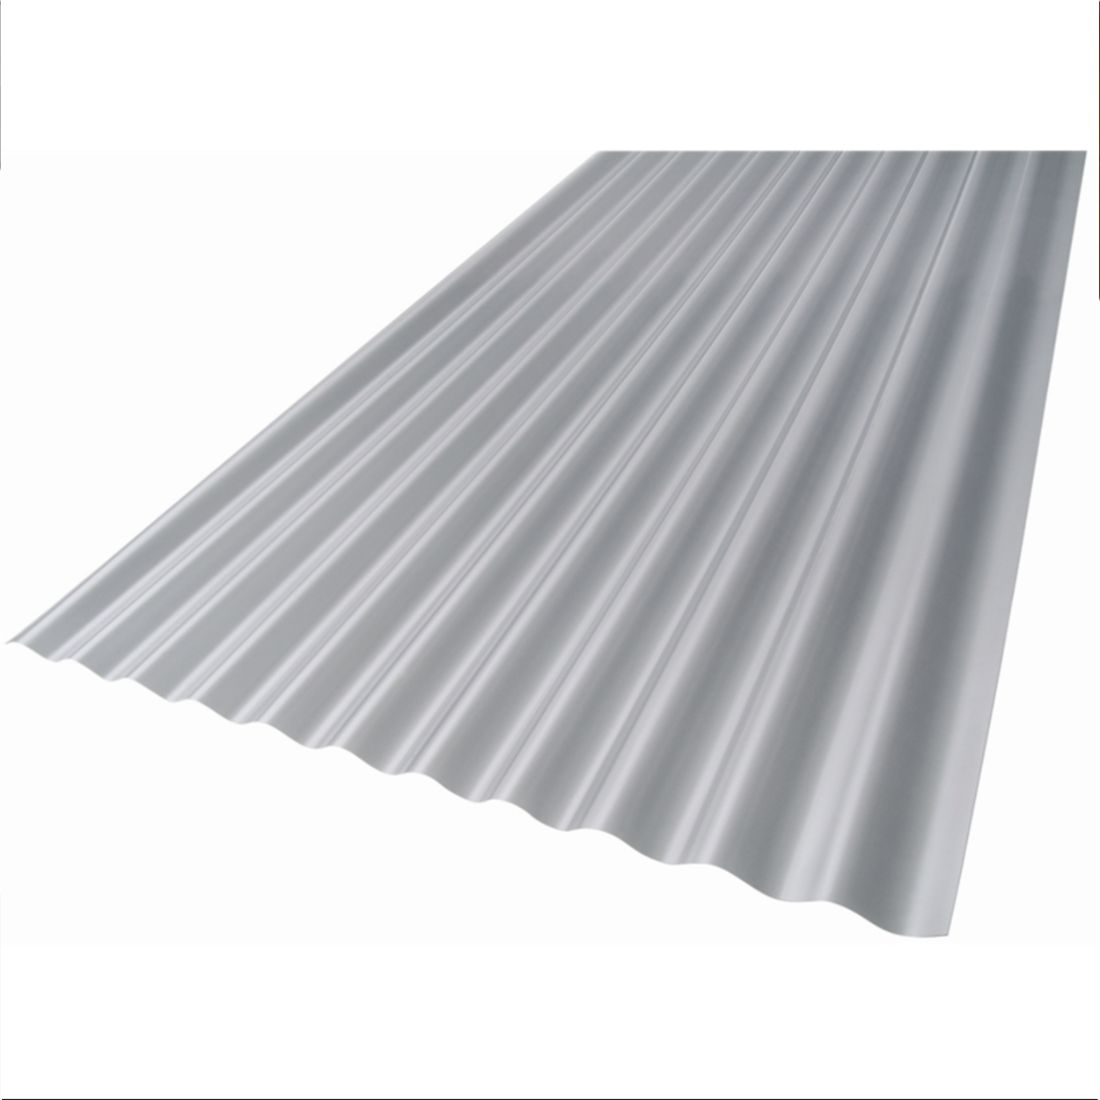 CoolTech Corrugated Grey 2400 x 860mm